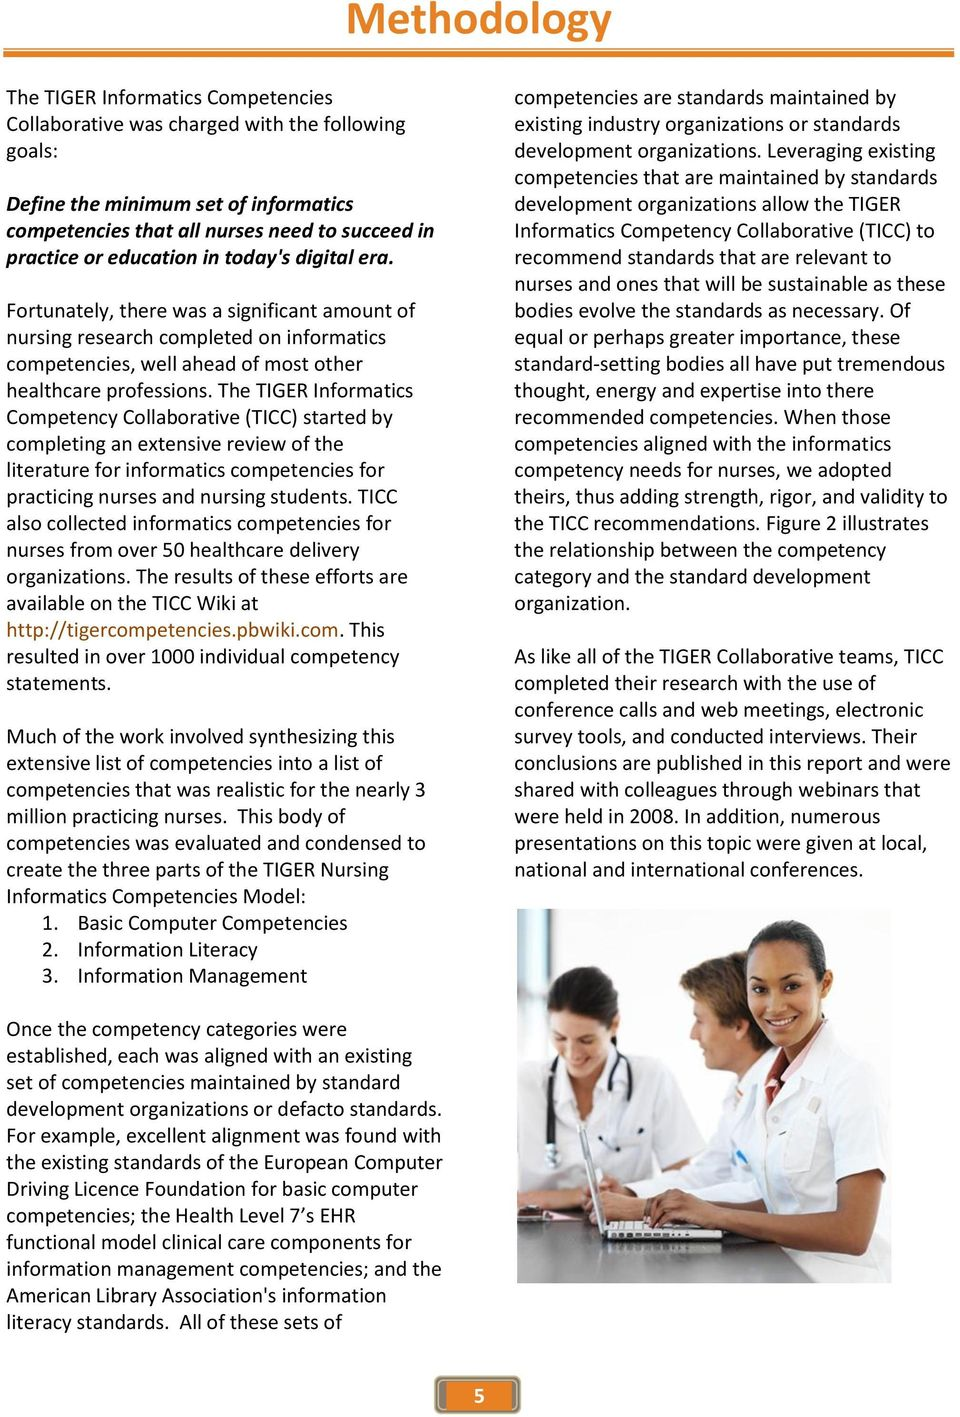 The TIGER Informatics Competency Collaborative (TICC) started by completing an extensive review of the literature for informatics competencies for practicing nurses and nursing students.